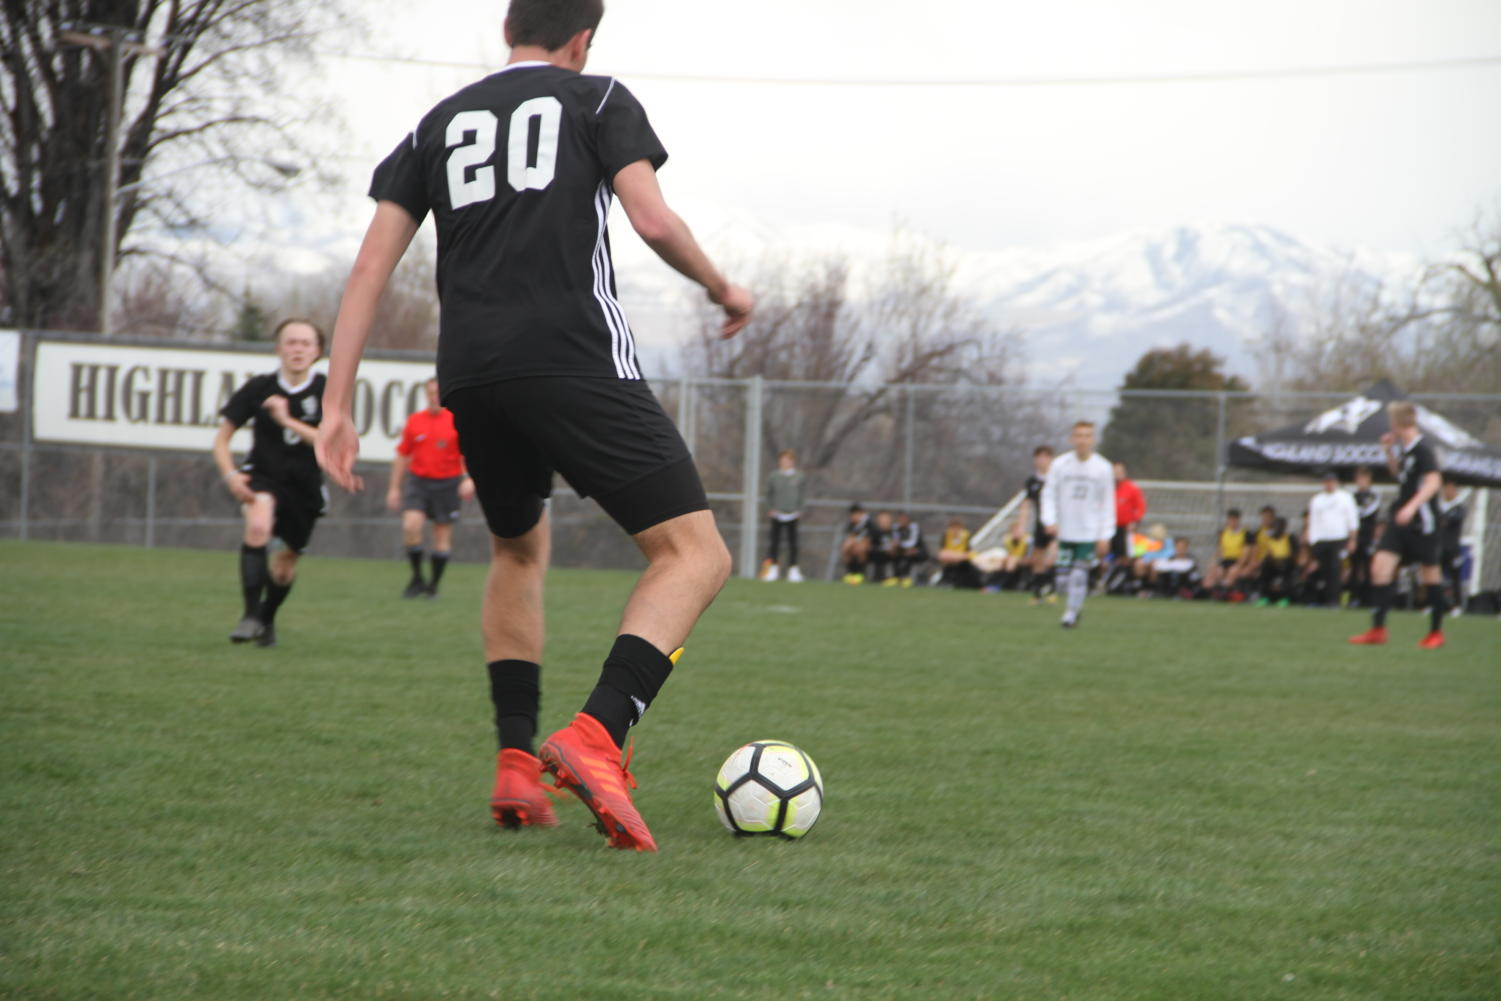 Highland's Owen Ross dribbles the ball up the field during the game against Olympus.